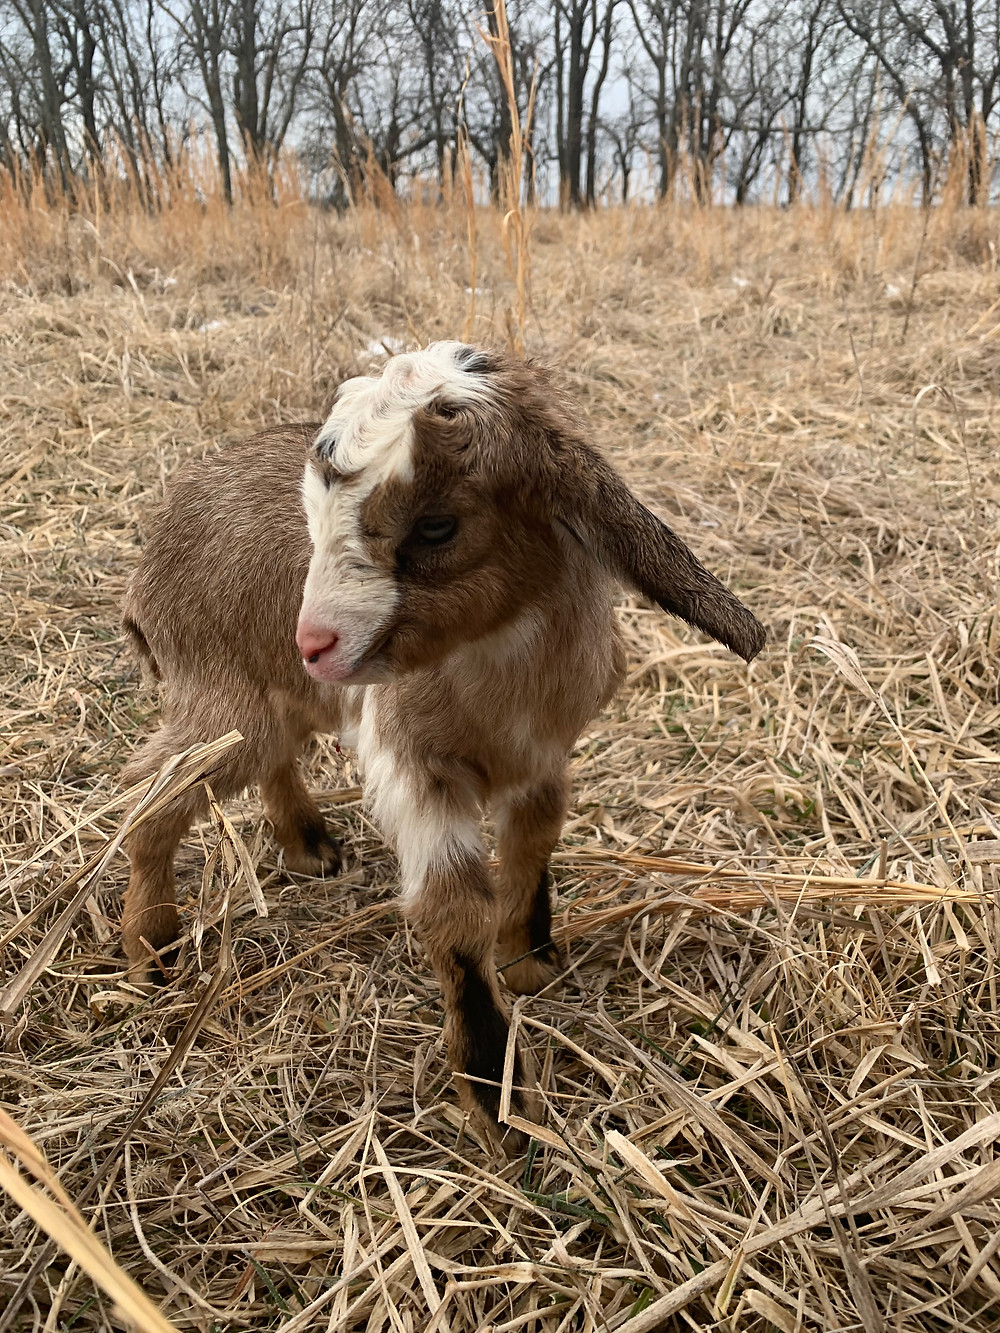 The Little Goat I Found on The Prairie, 2/7/2020